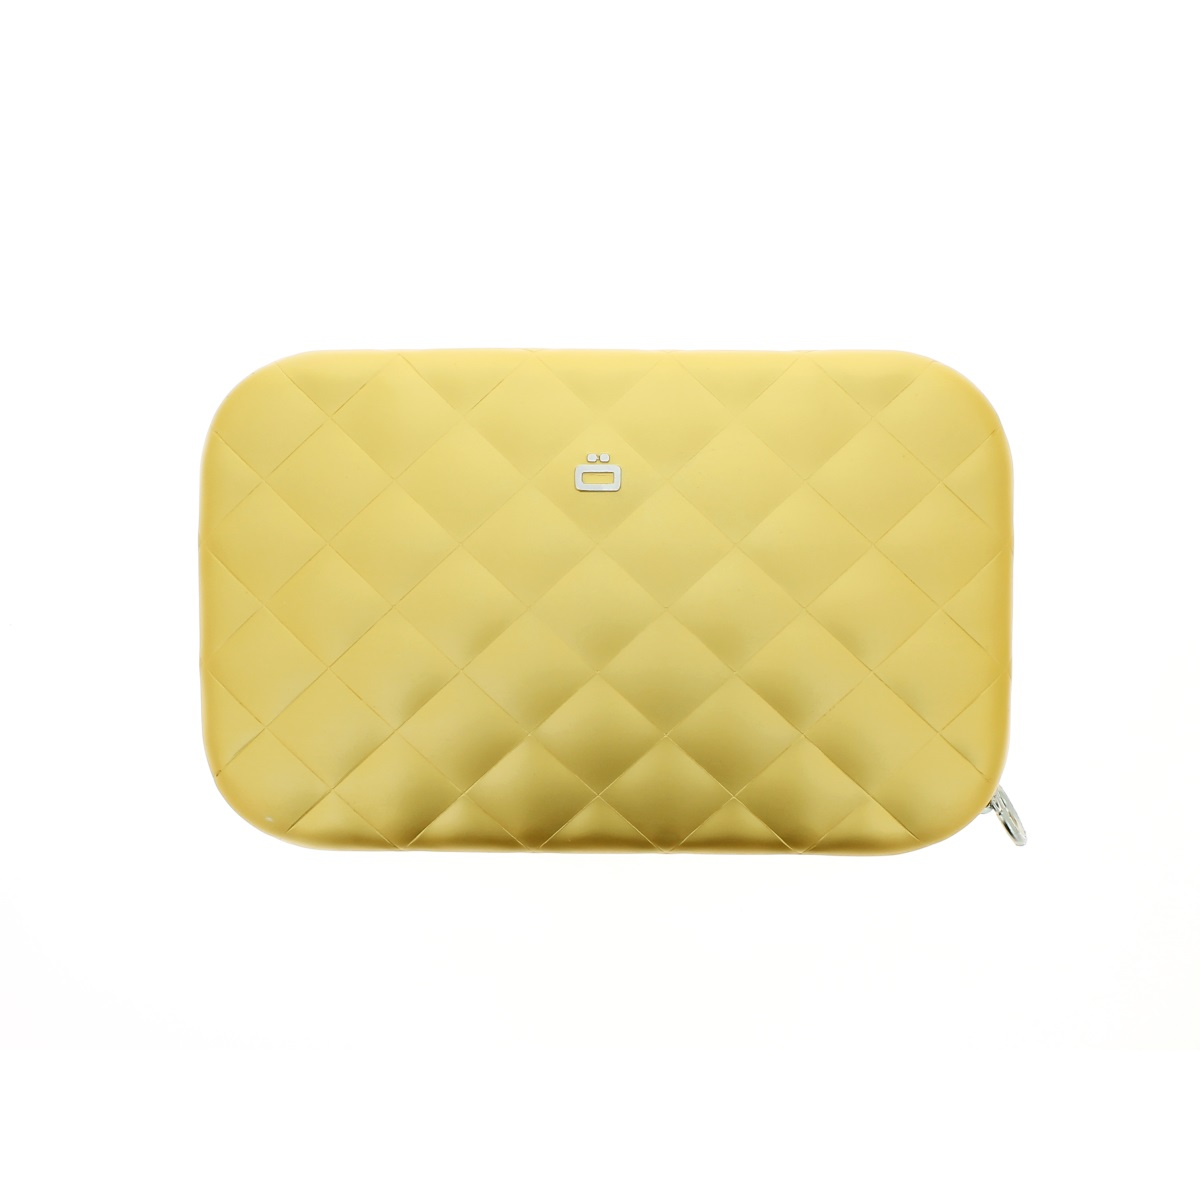 OGON Aluminum Clutch Quilted Lady Bag - Gold